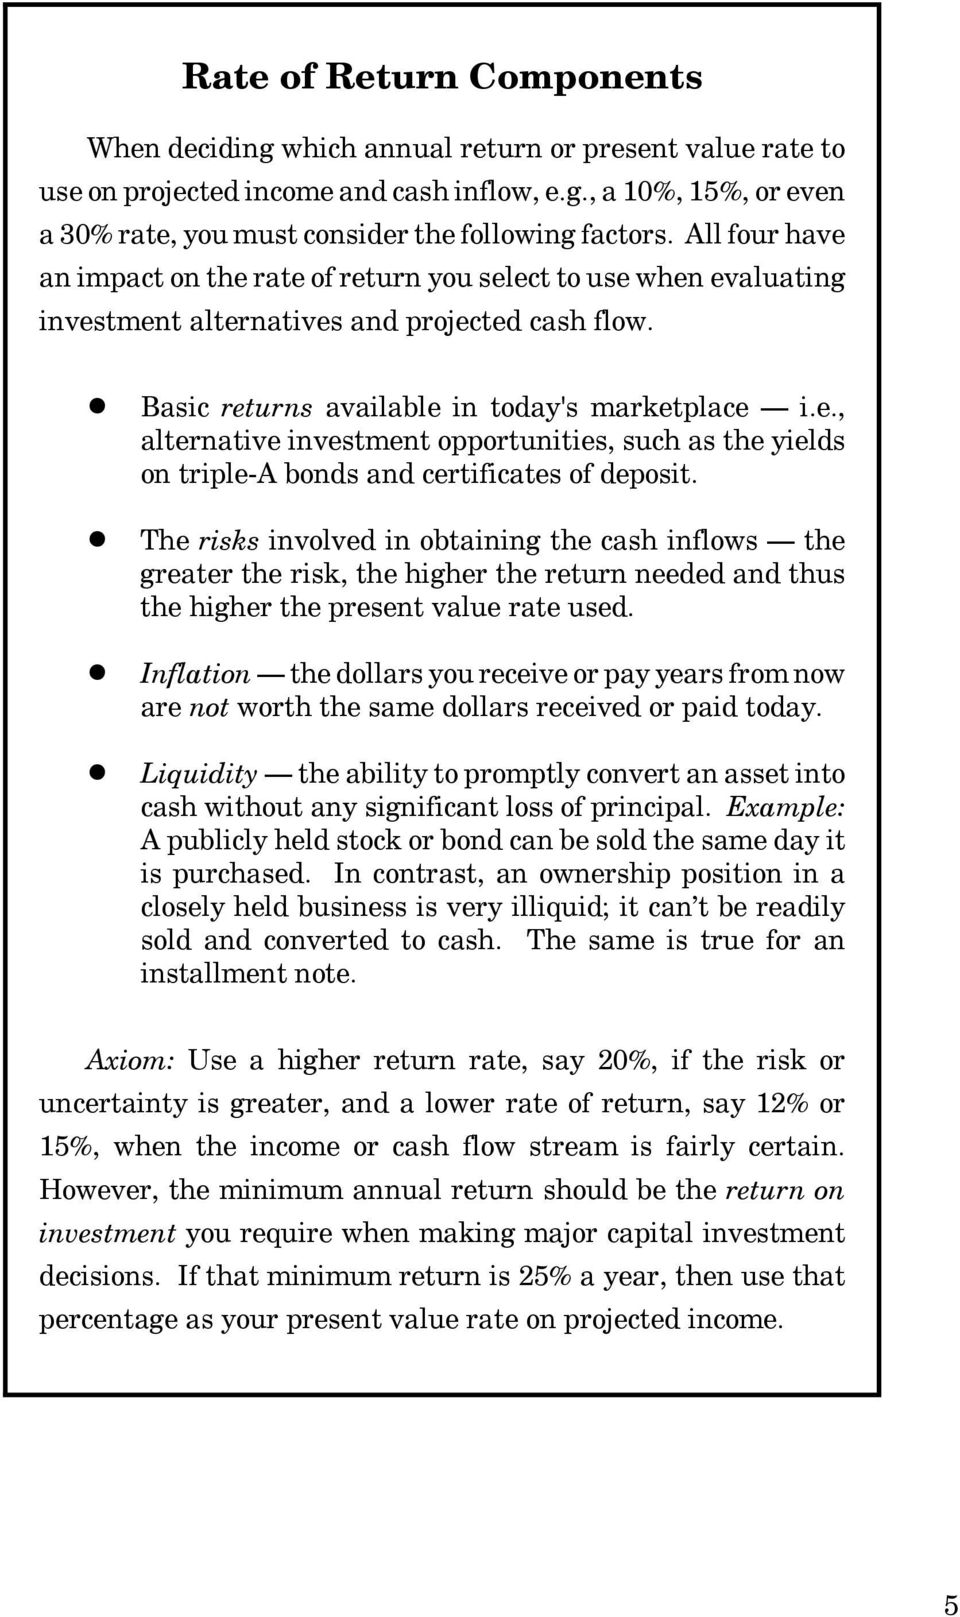 ! The risks involved in obtaining the cash inflows the greater the risk, the higher the return needed and thus the higher the present value rate used.